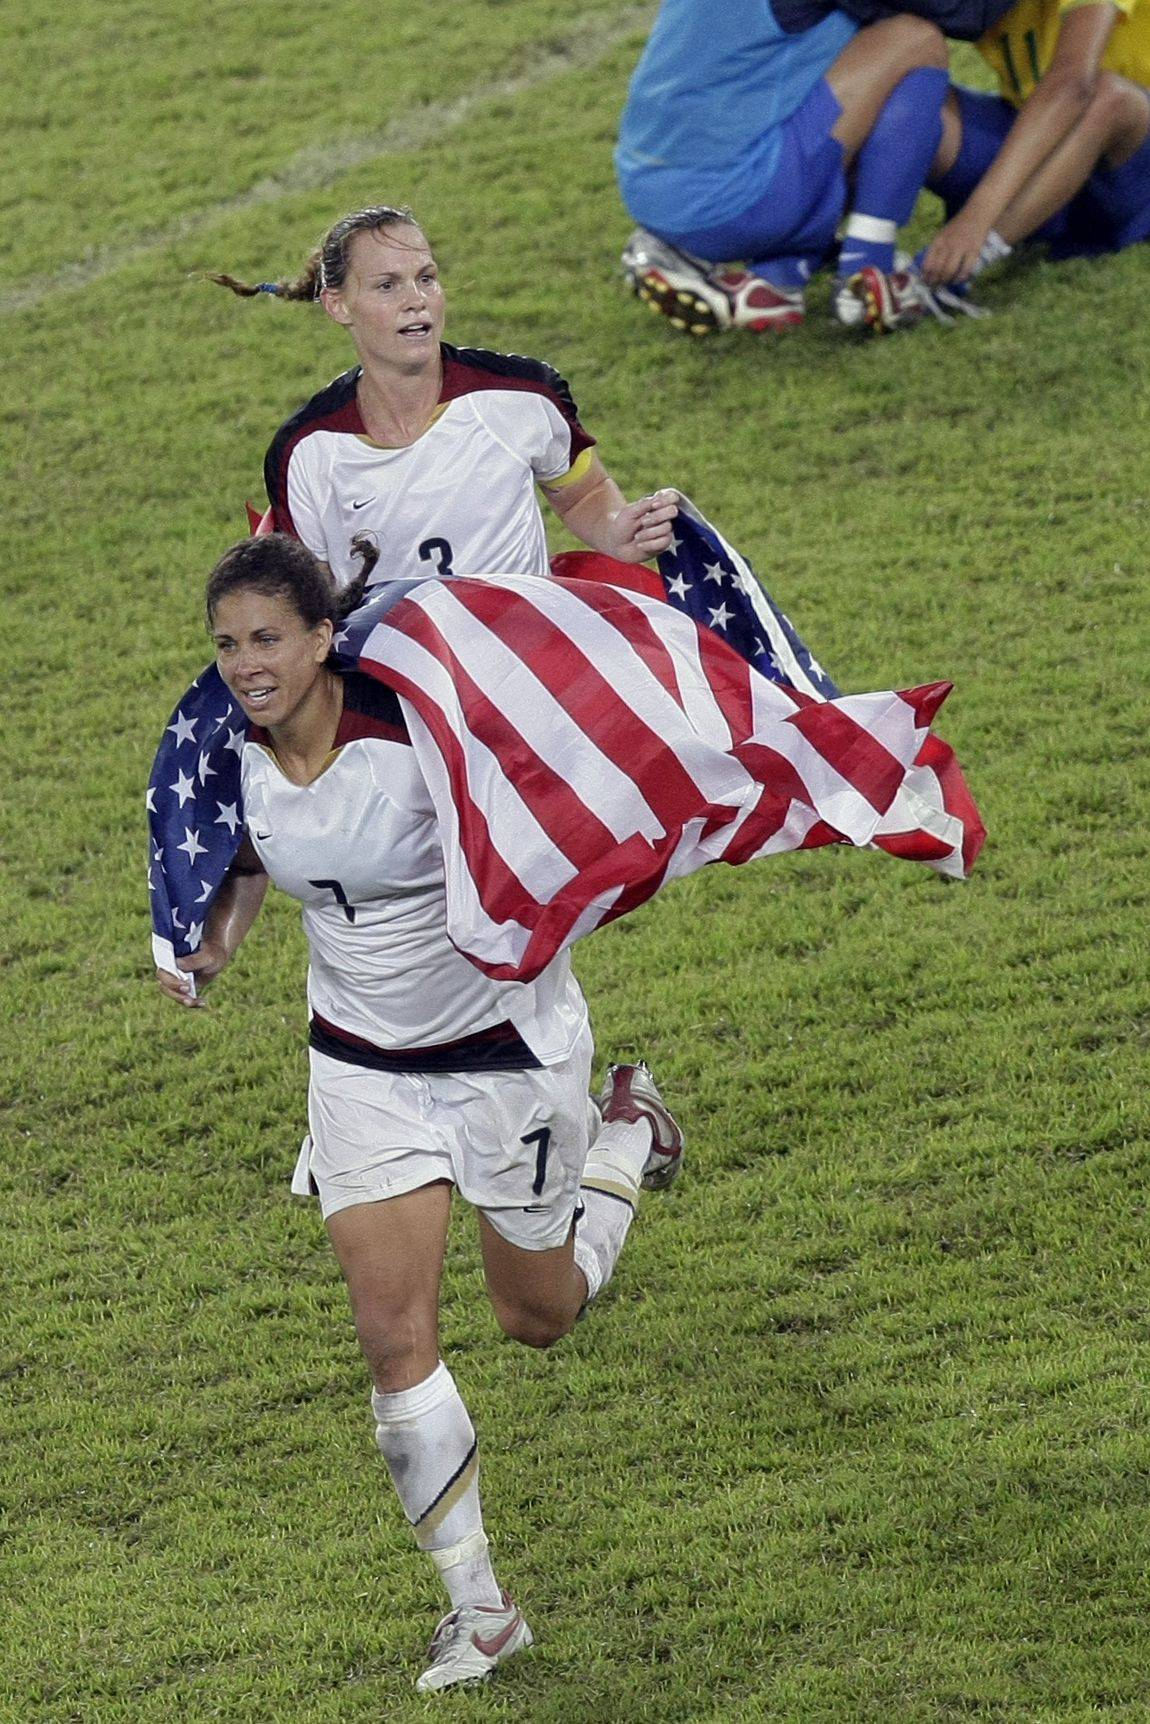 Shannon Boxx, now with the Chicago Red Stars, celebrates after the United States defeated Brazil in the women�s soccer gold-medal match at the Beijing Olympics in 2008.